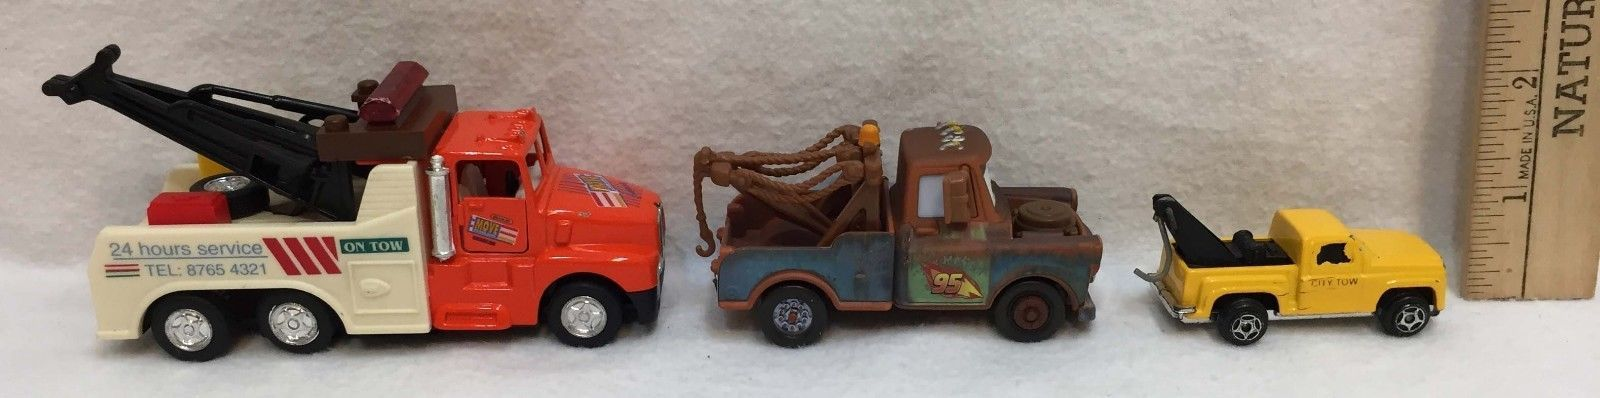 Tow Trucks Toys Kintoy Disney Pixar Mater Die Cast Metal & Plastic Lot of 3